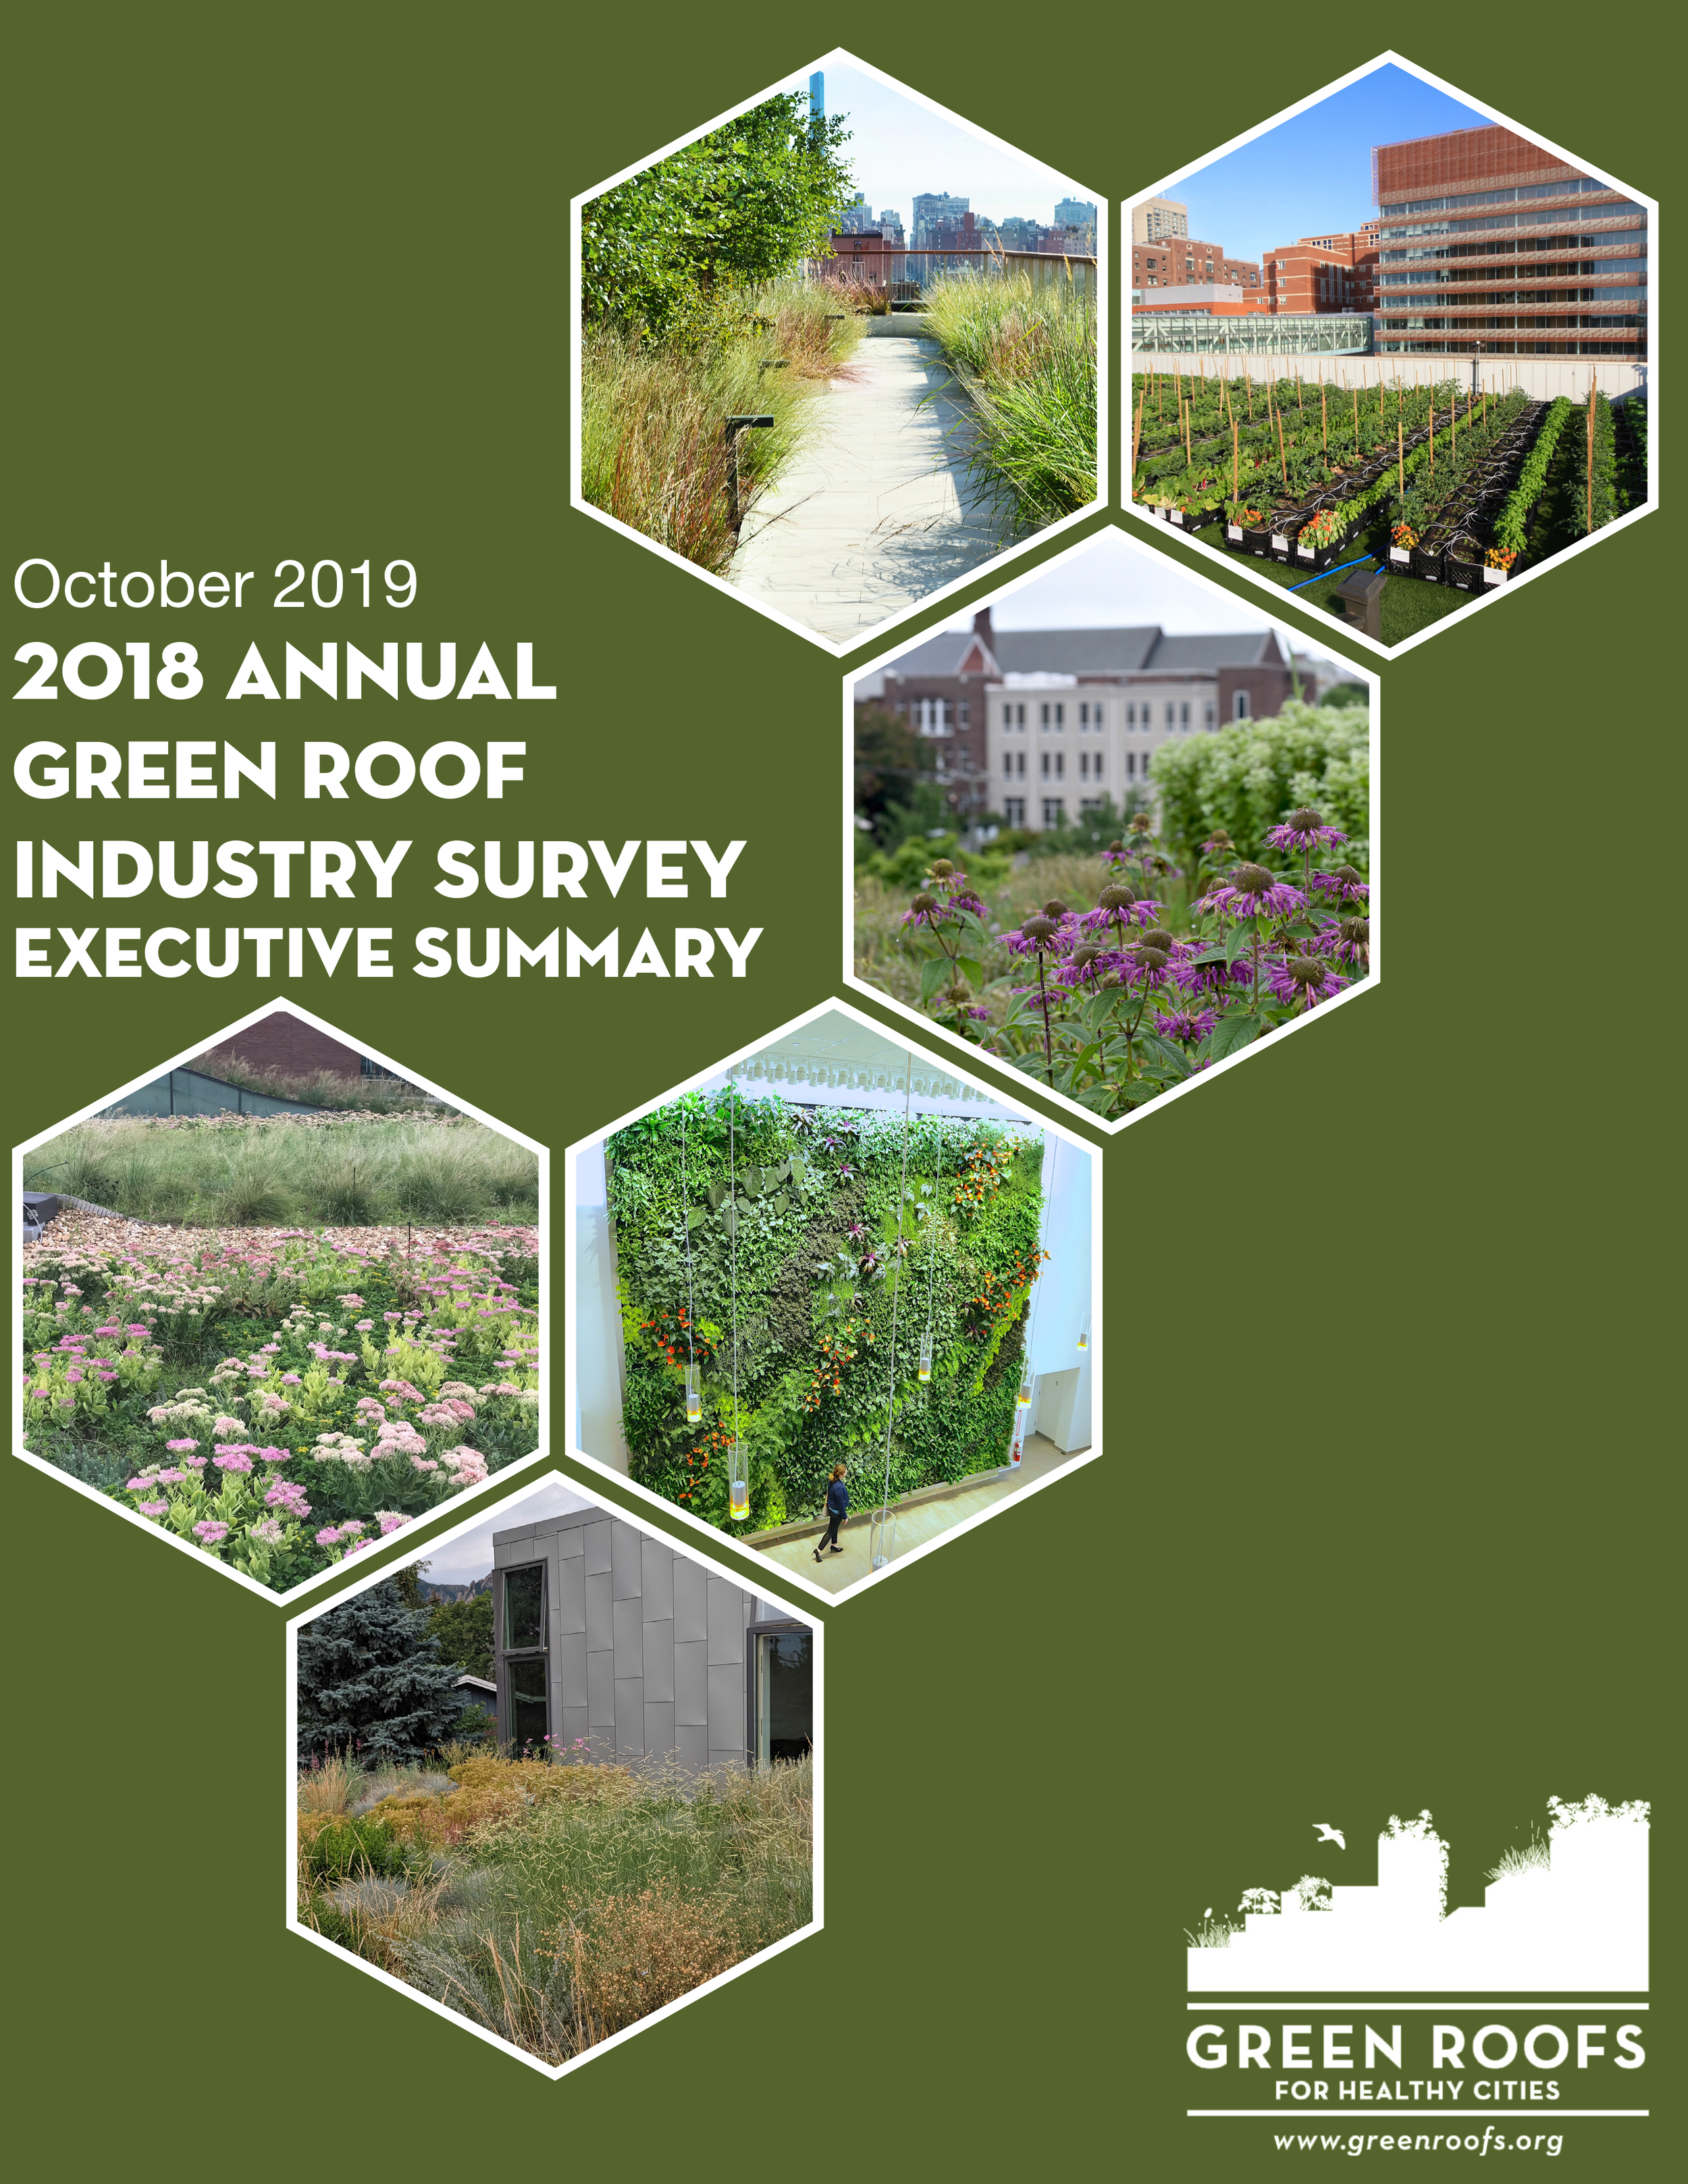 GreenRoofIndustrySurvey2019ExecutiveSummary-cover.png